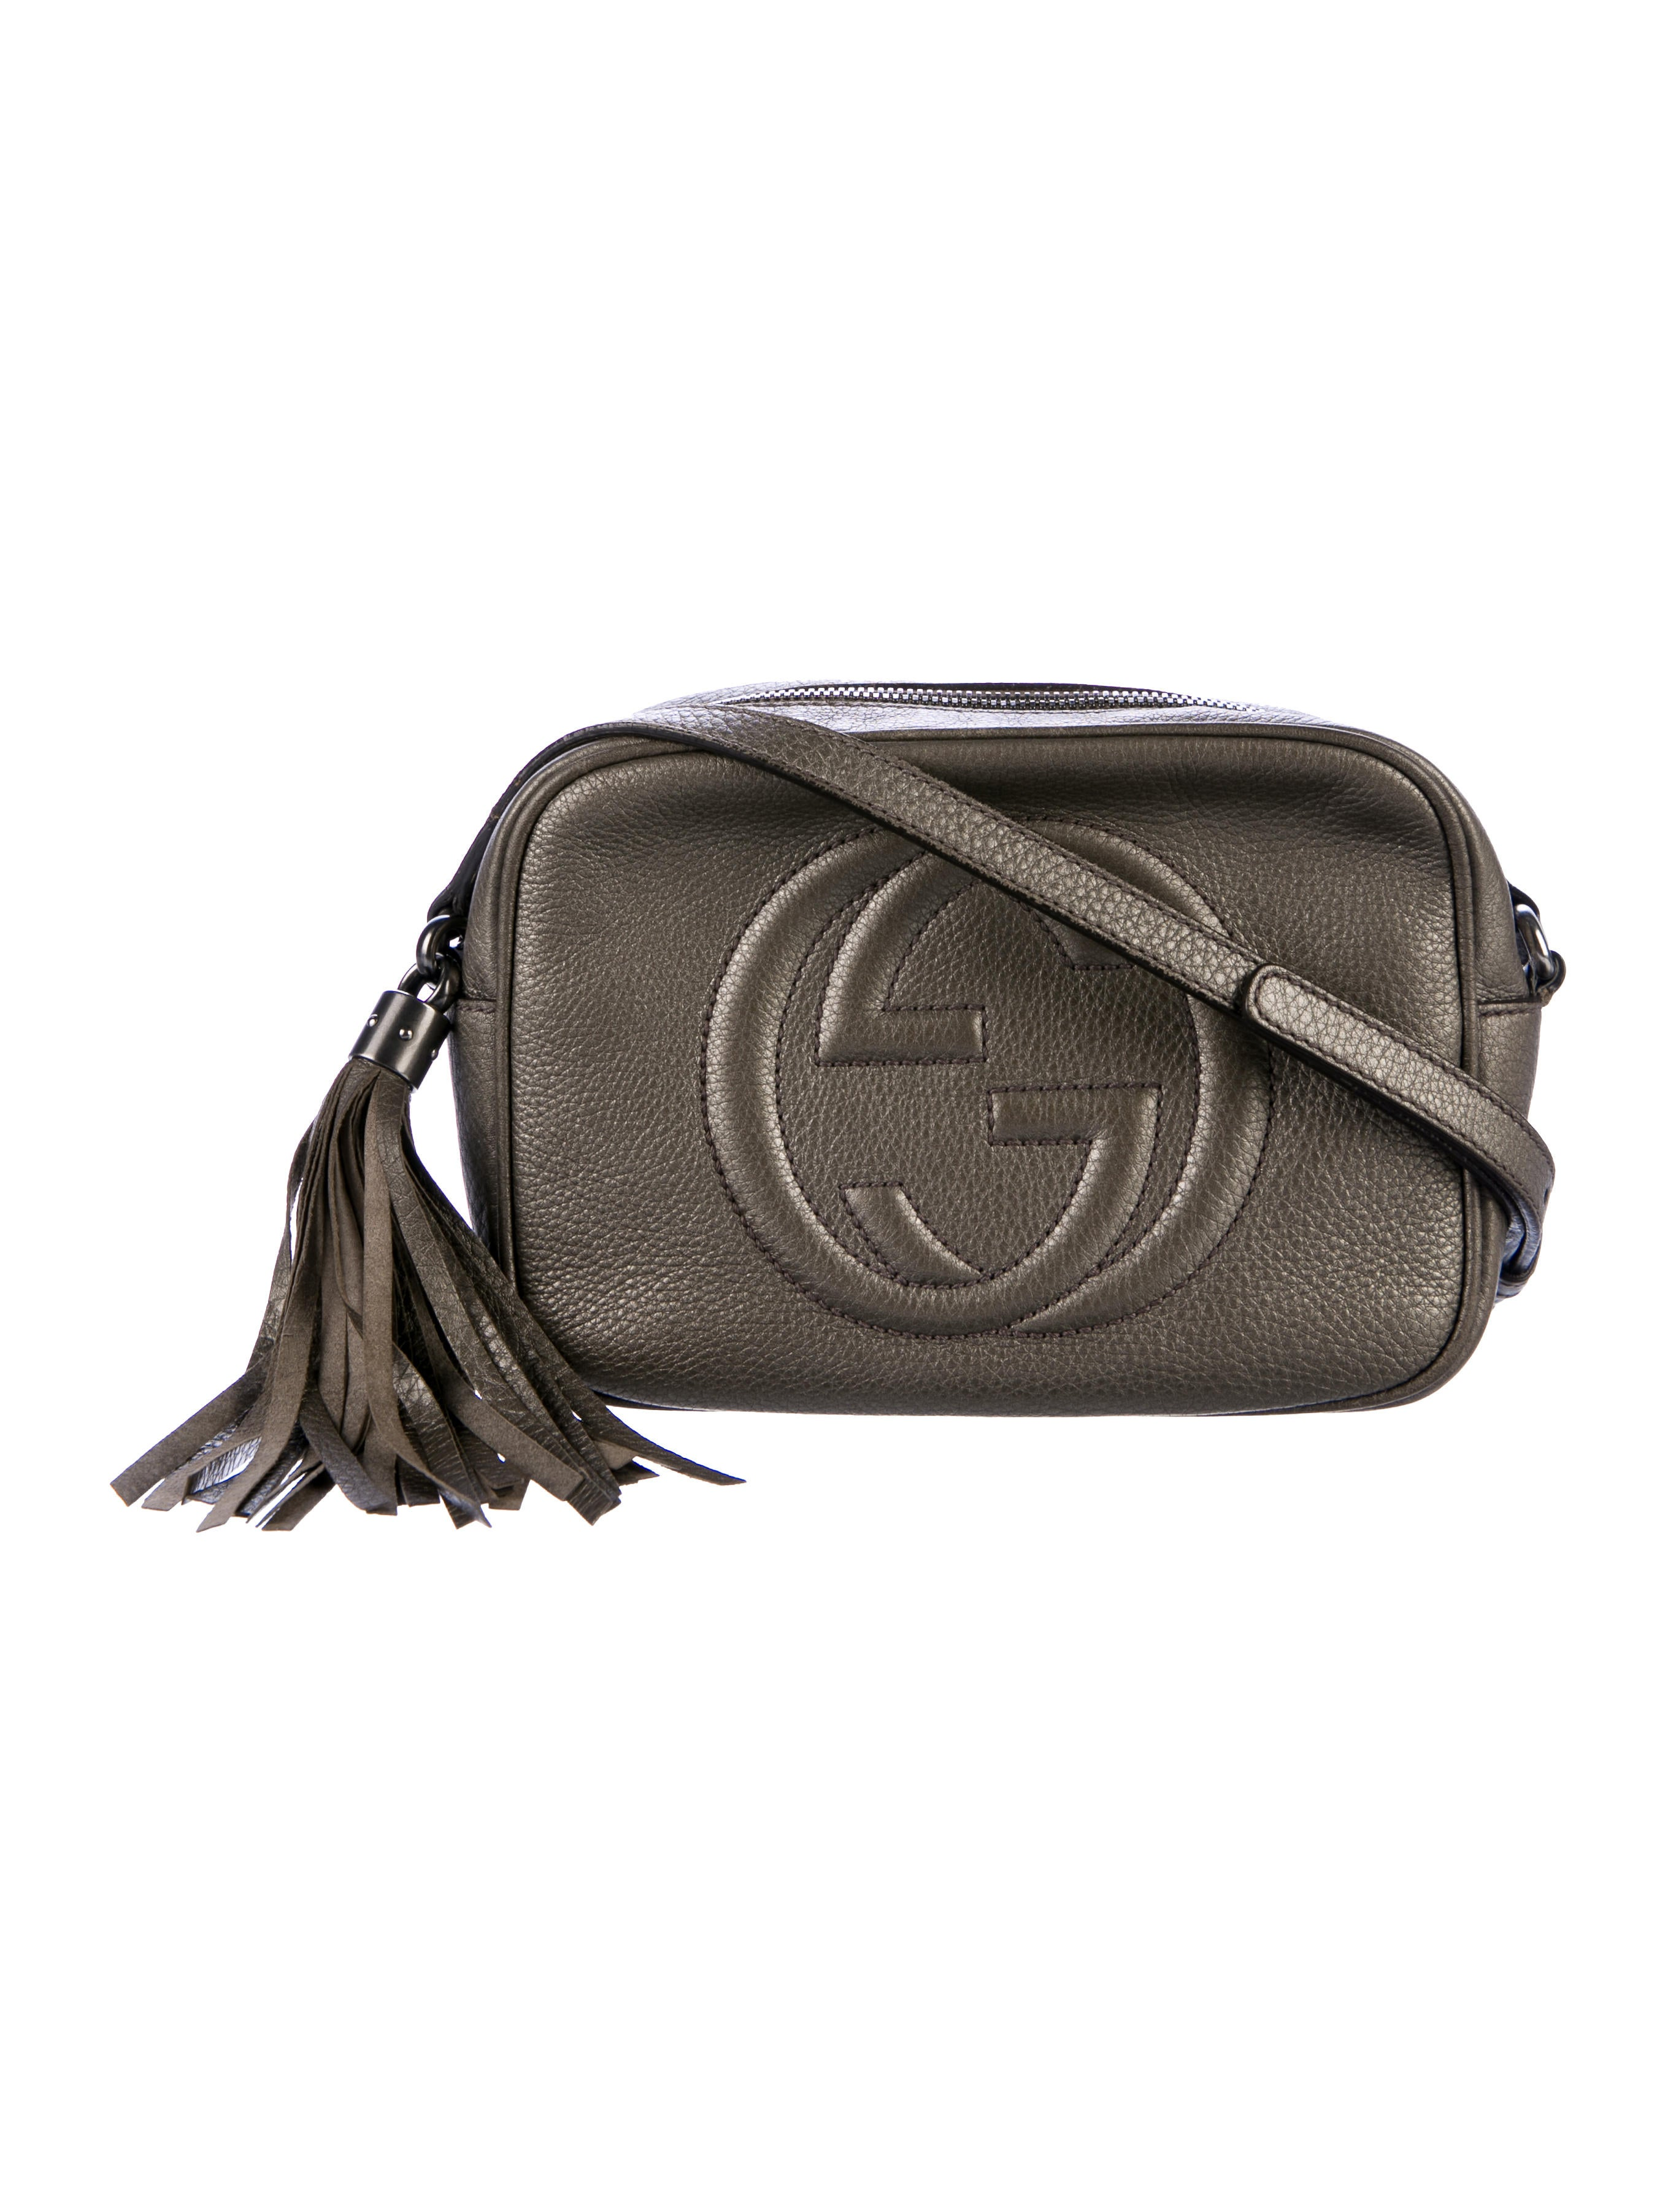 8717c9f0df4206 Buy Gucci Soho Disco Bag Online. Buy Gucci Soho Disco Crossbody Bag Leather  Small ...